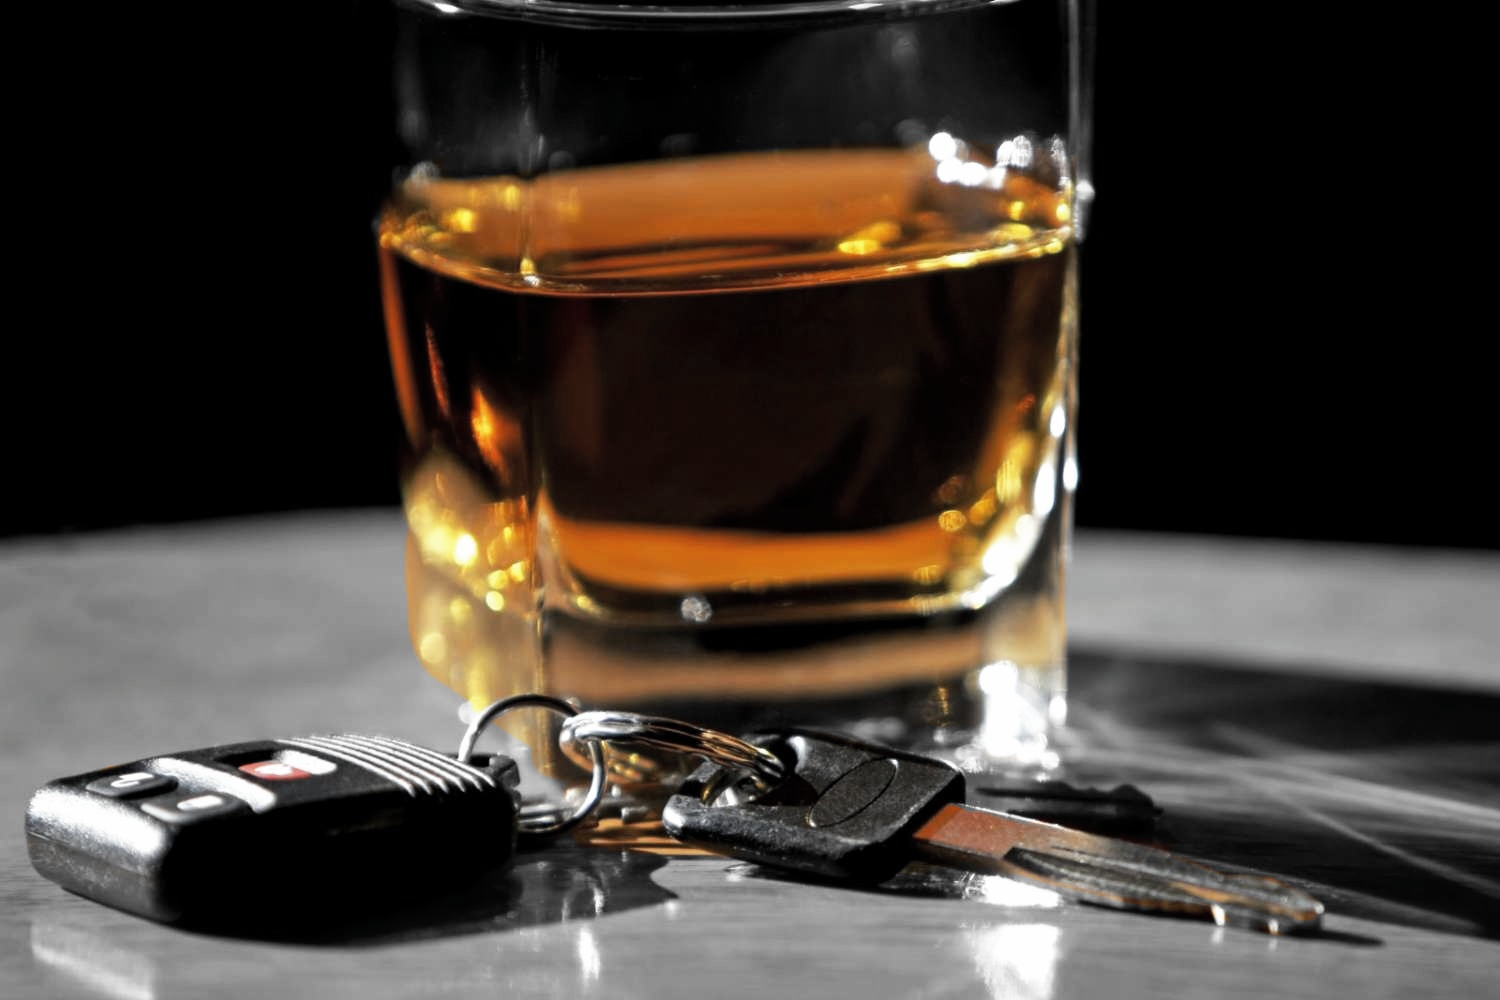 Consulting DUI lawyers Is The Only Way To Decide Whether You Need Their Services Or Not